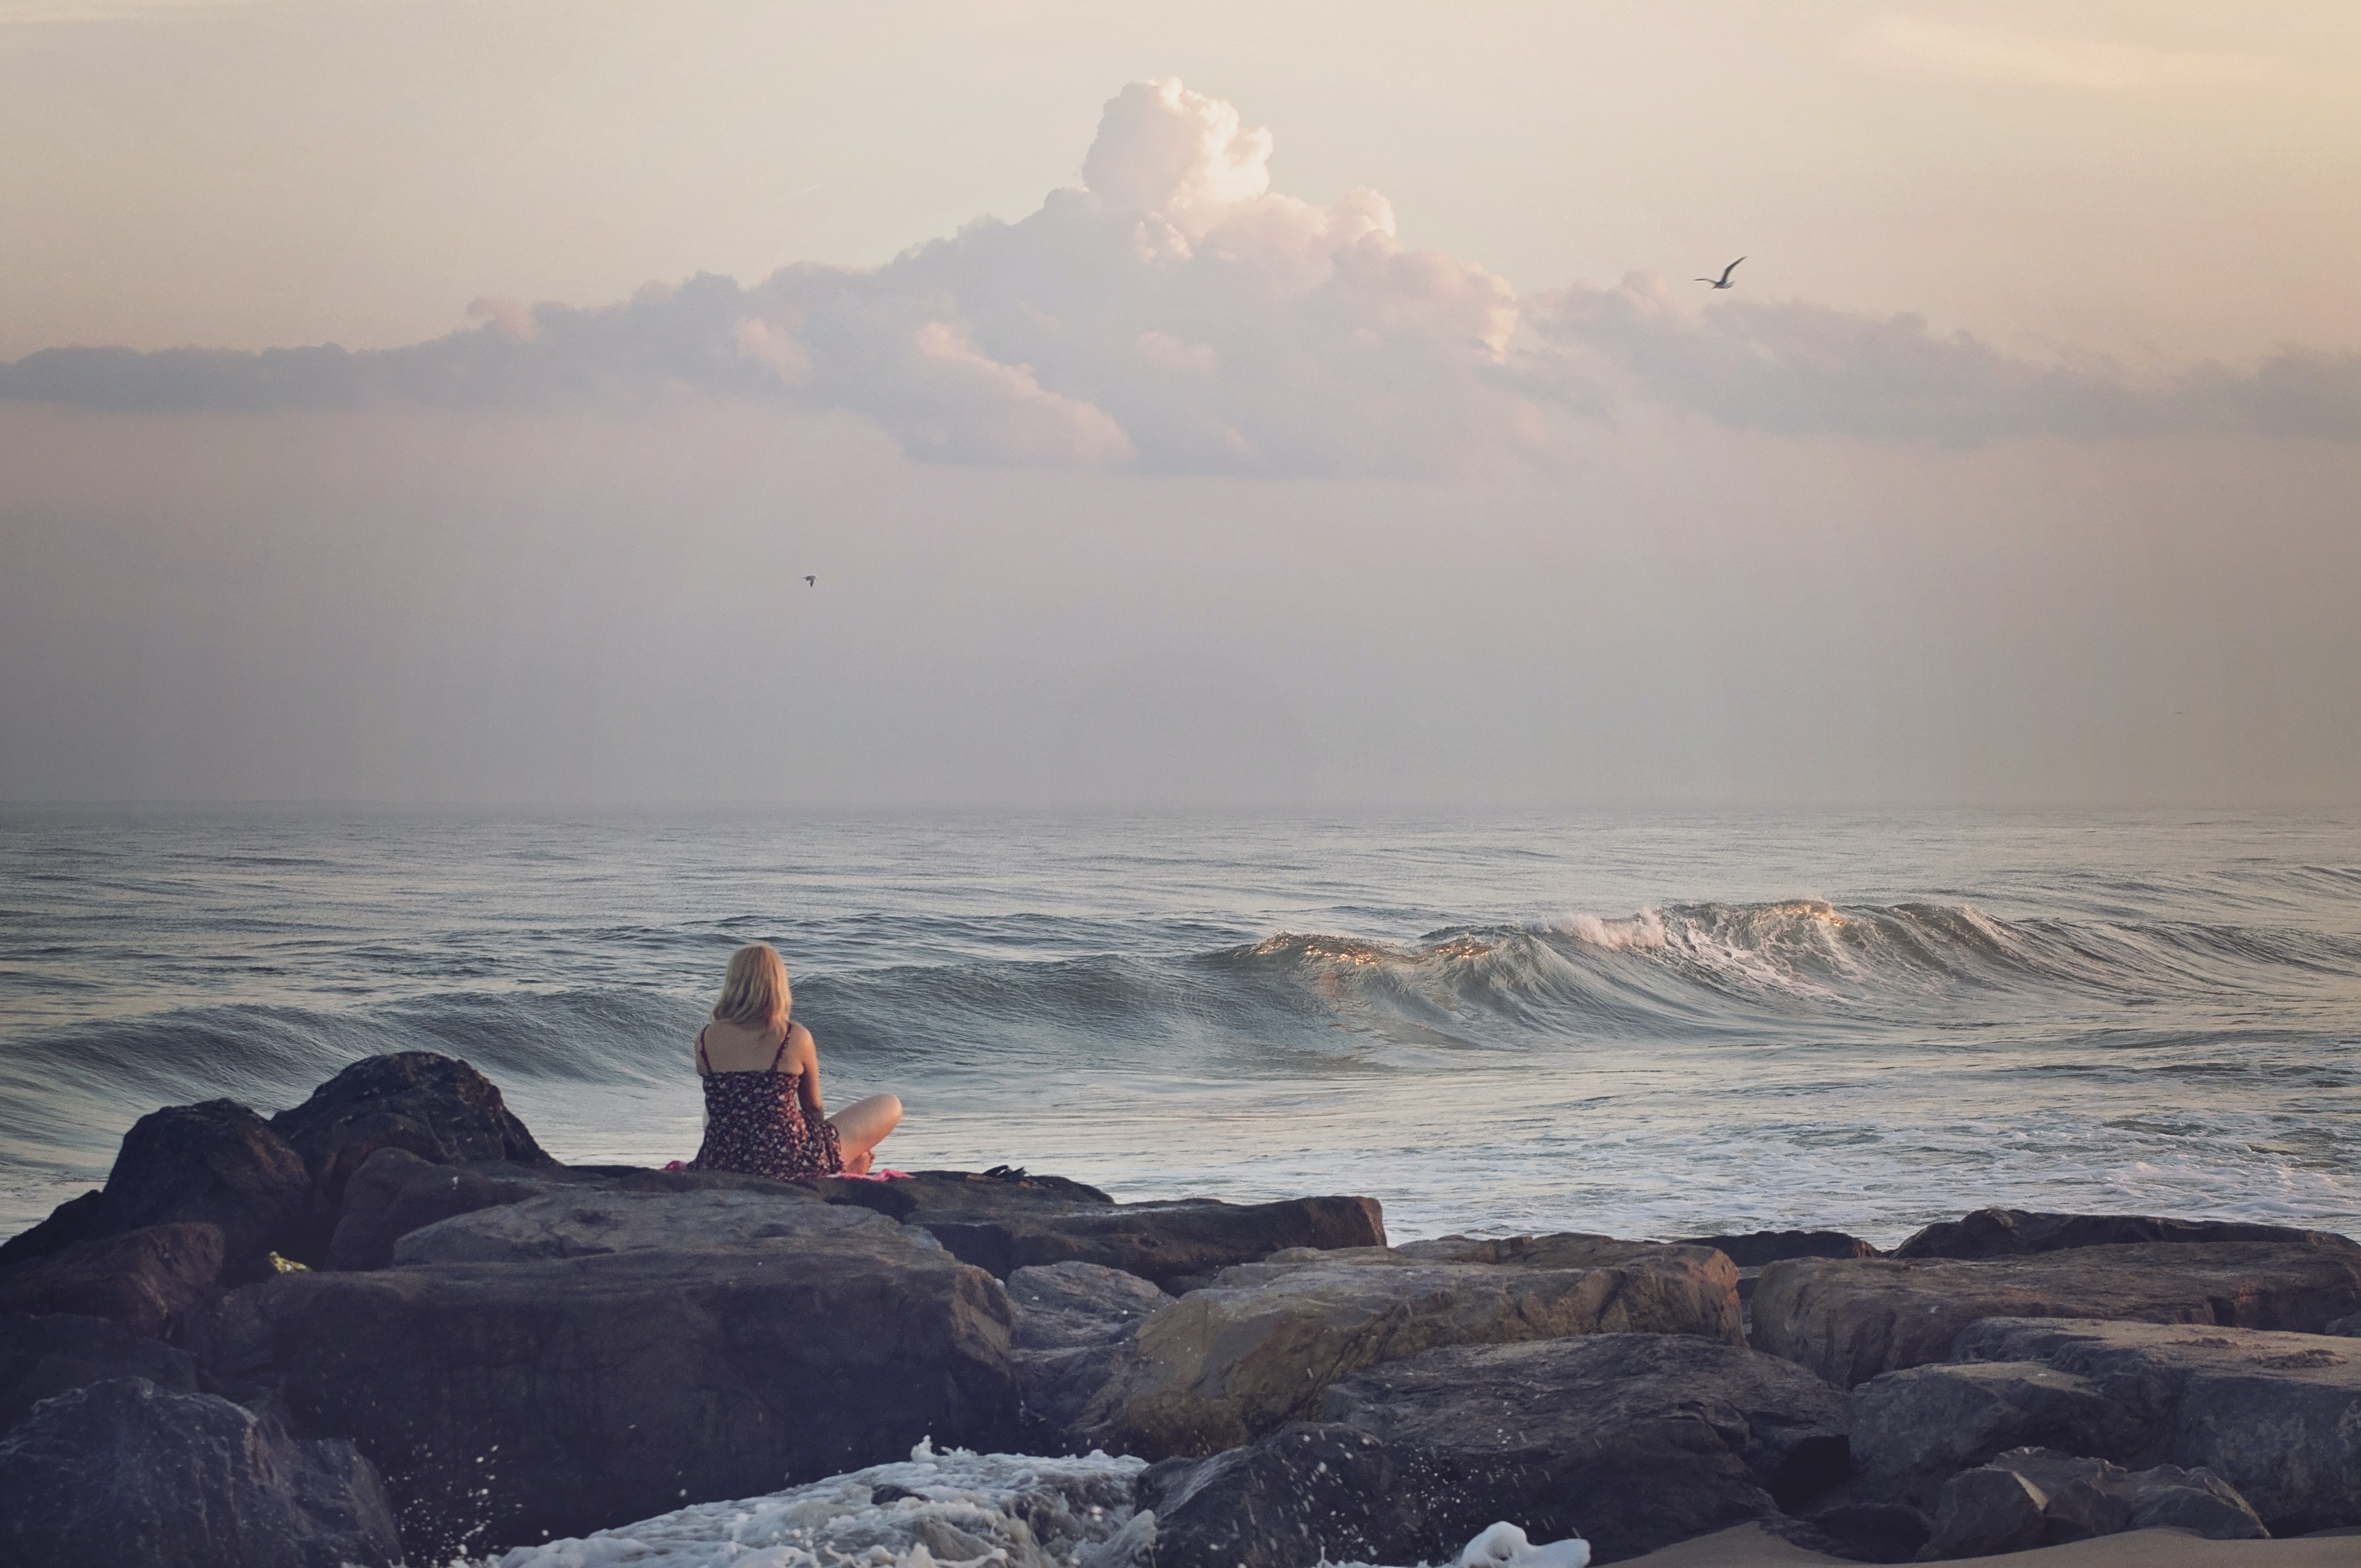 Woman sitting on the rock looking at the ocean waves at sunset